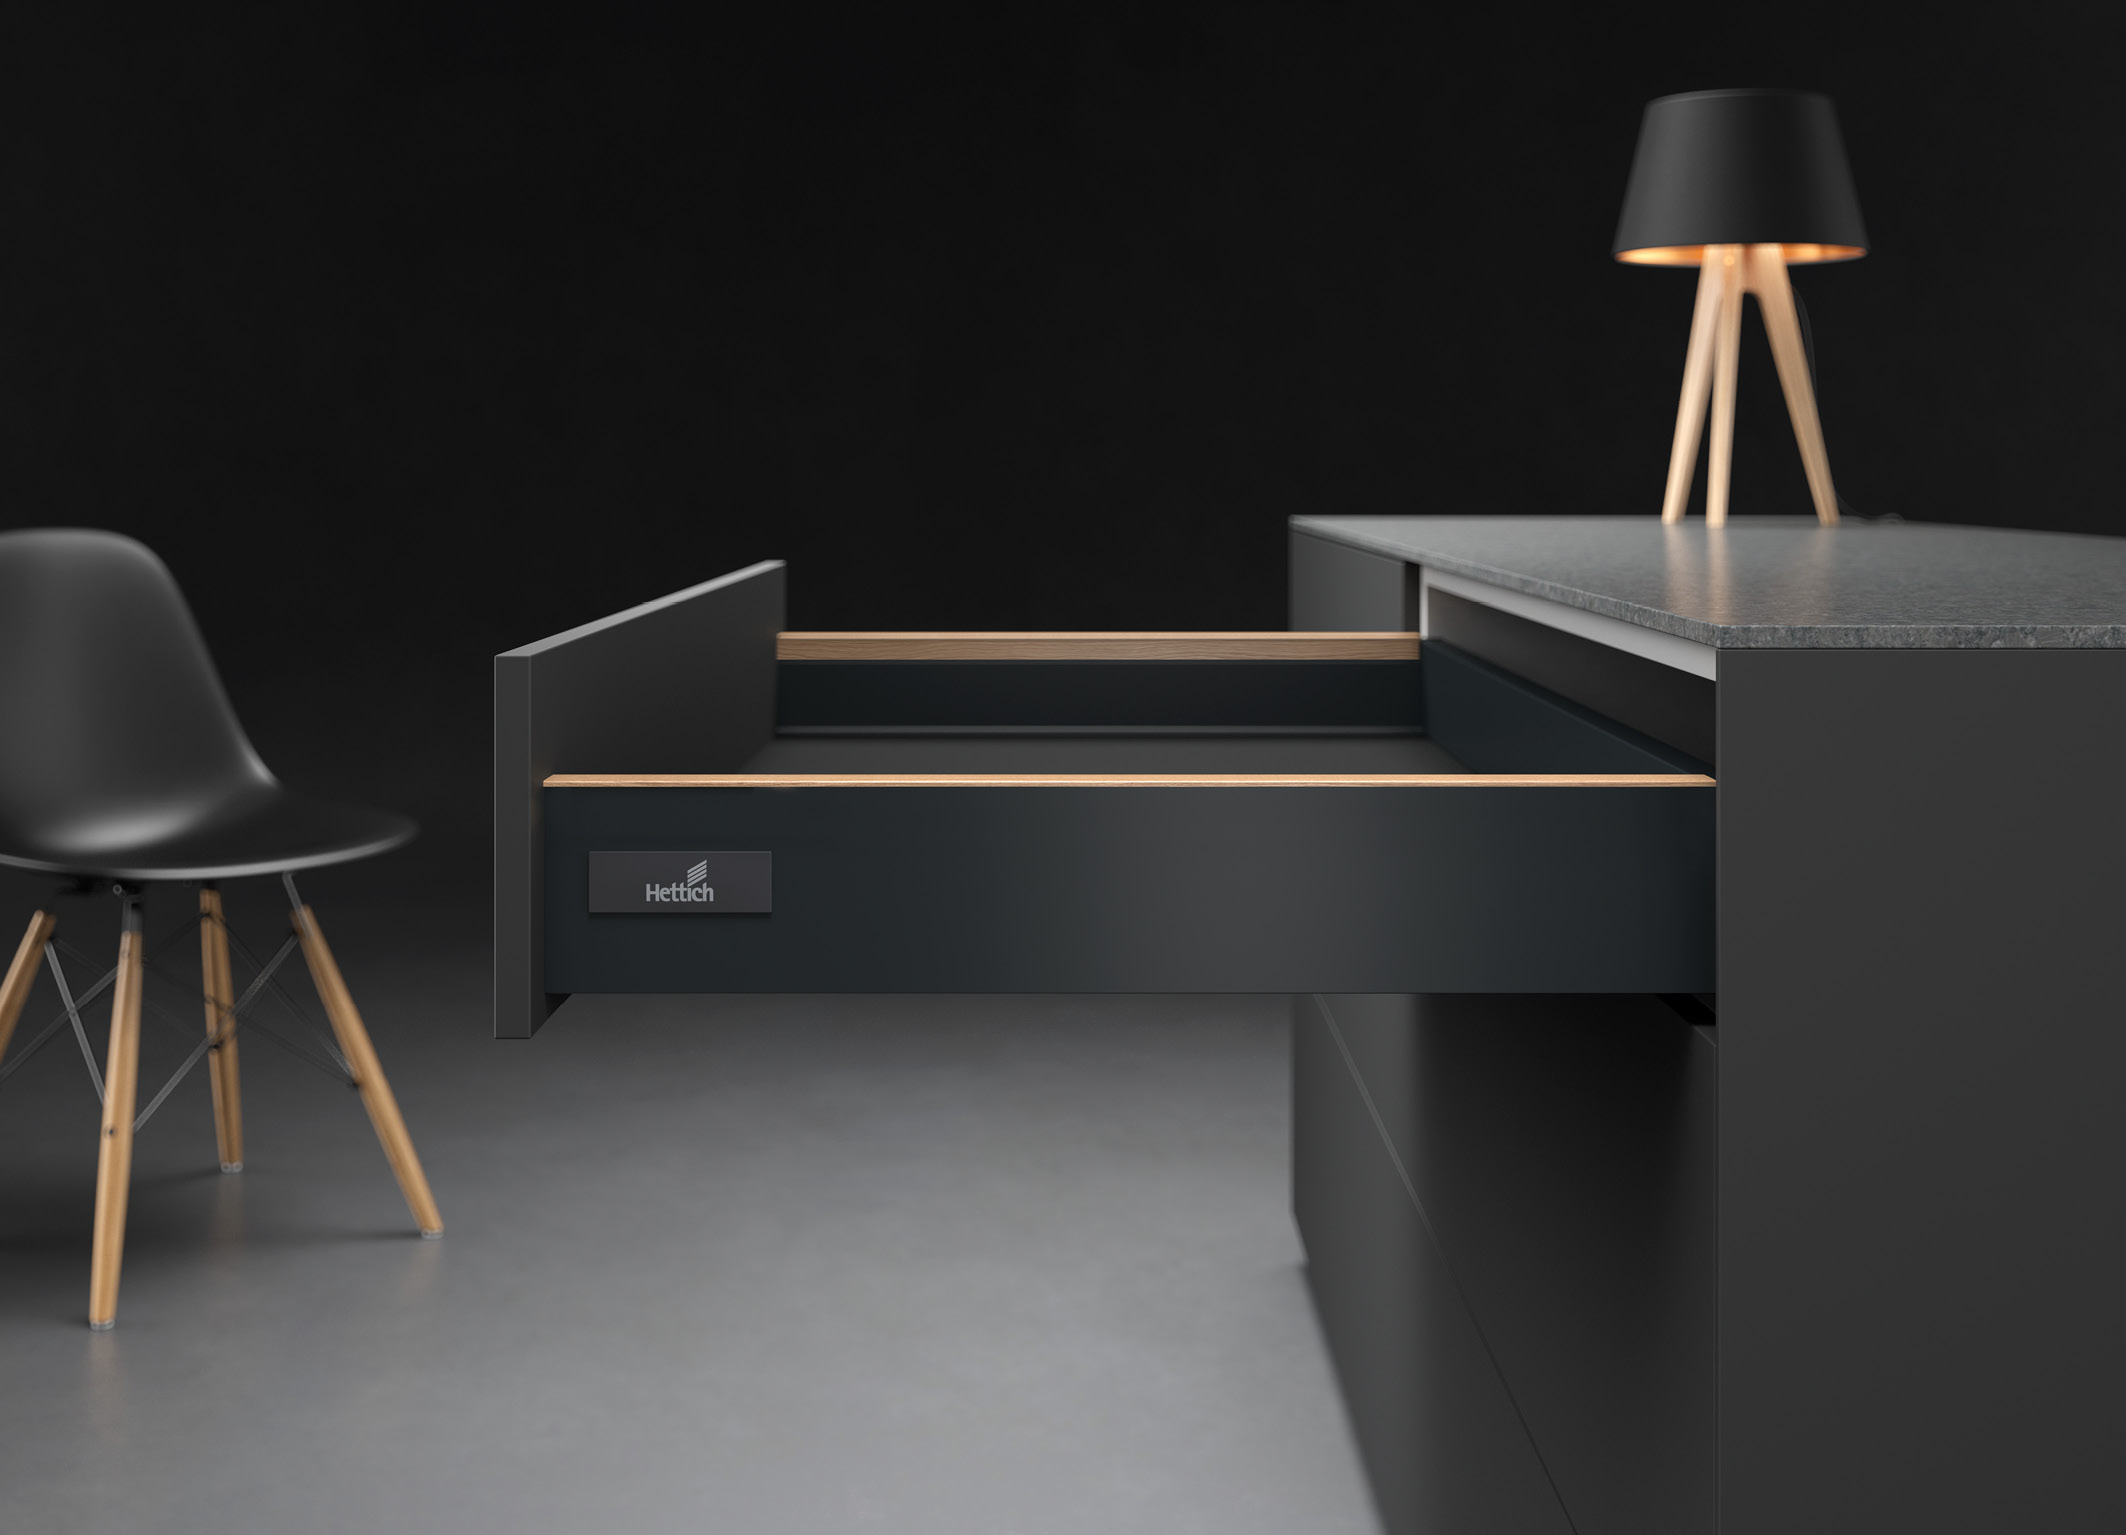 distinctive designs furniture. Little Cost And Effort \u2013 Great Effect: Self Adhesive Designer Profiles For Drawers From Hettich. Differentiation The Easy Effective Way. Distinctive Designs Furniture